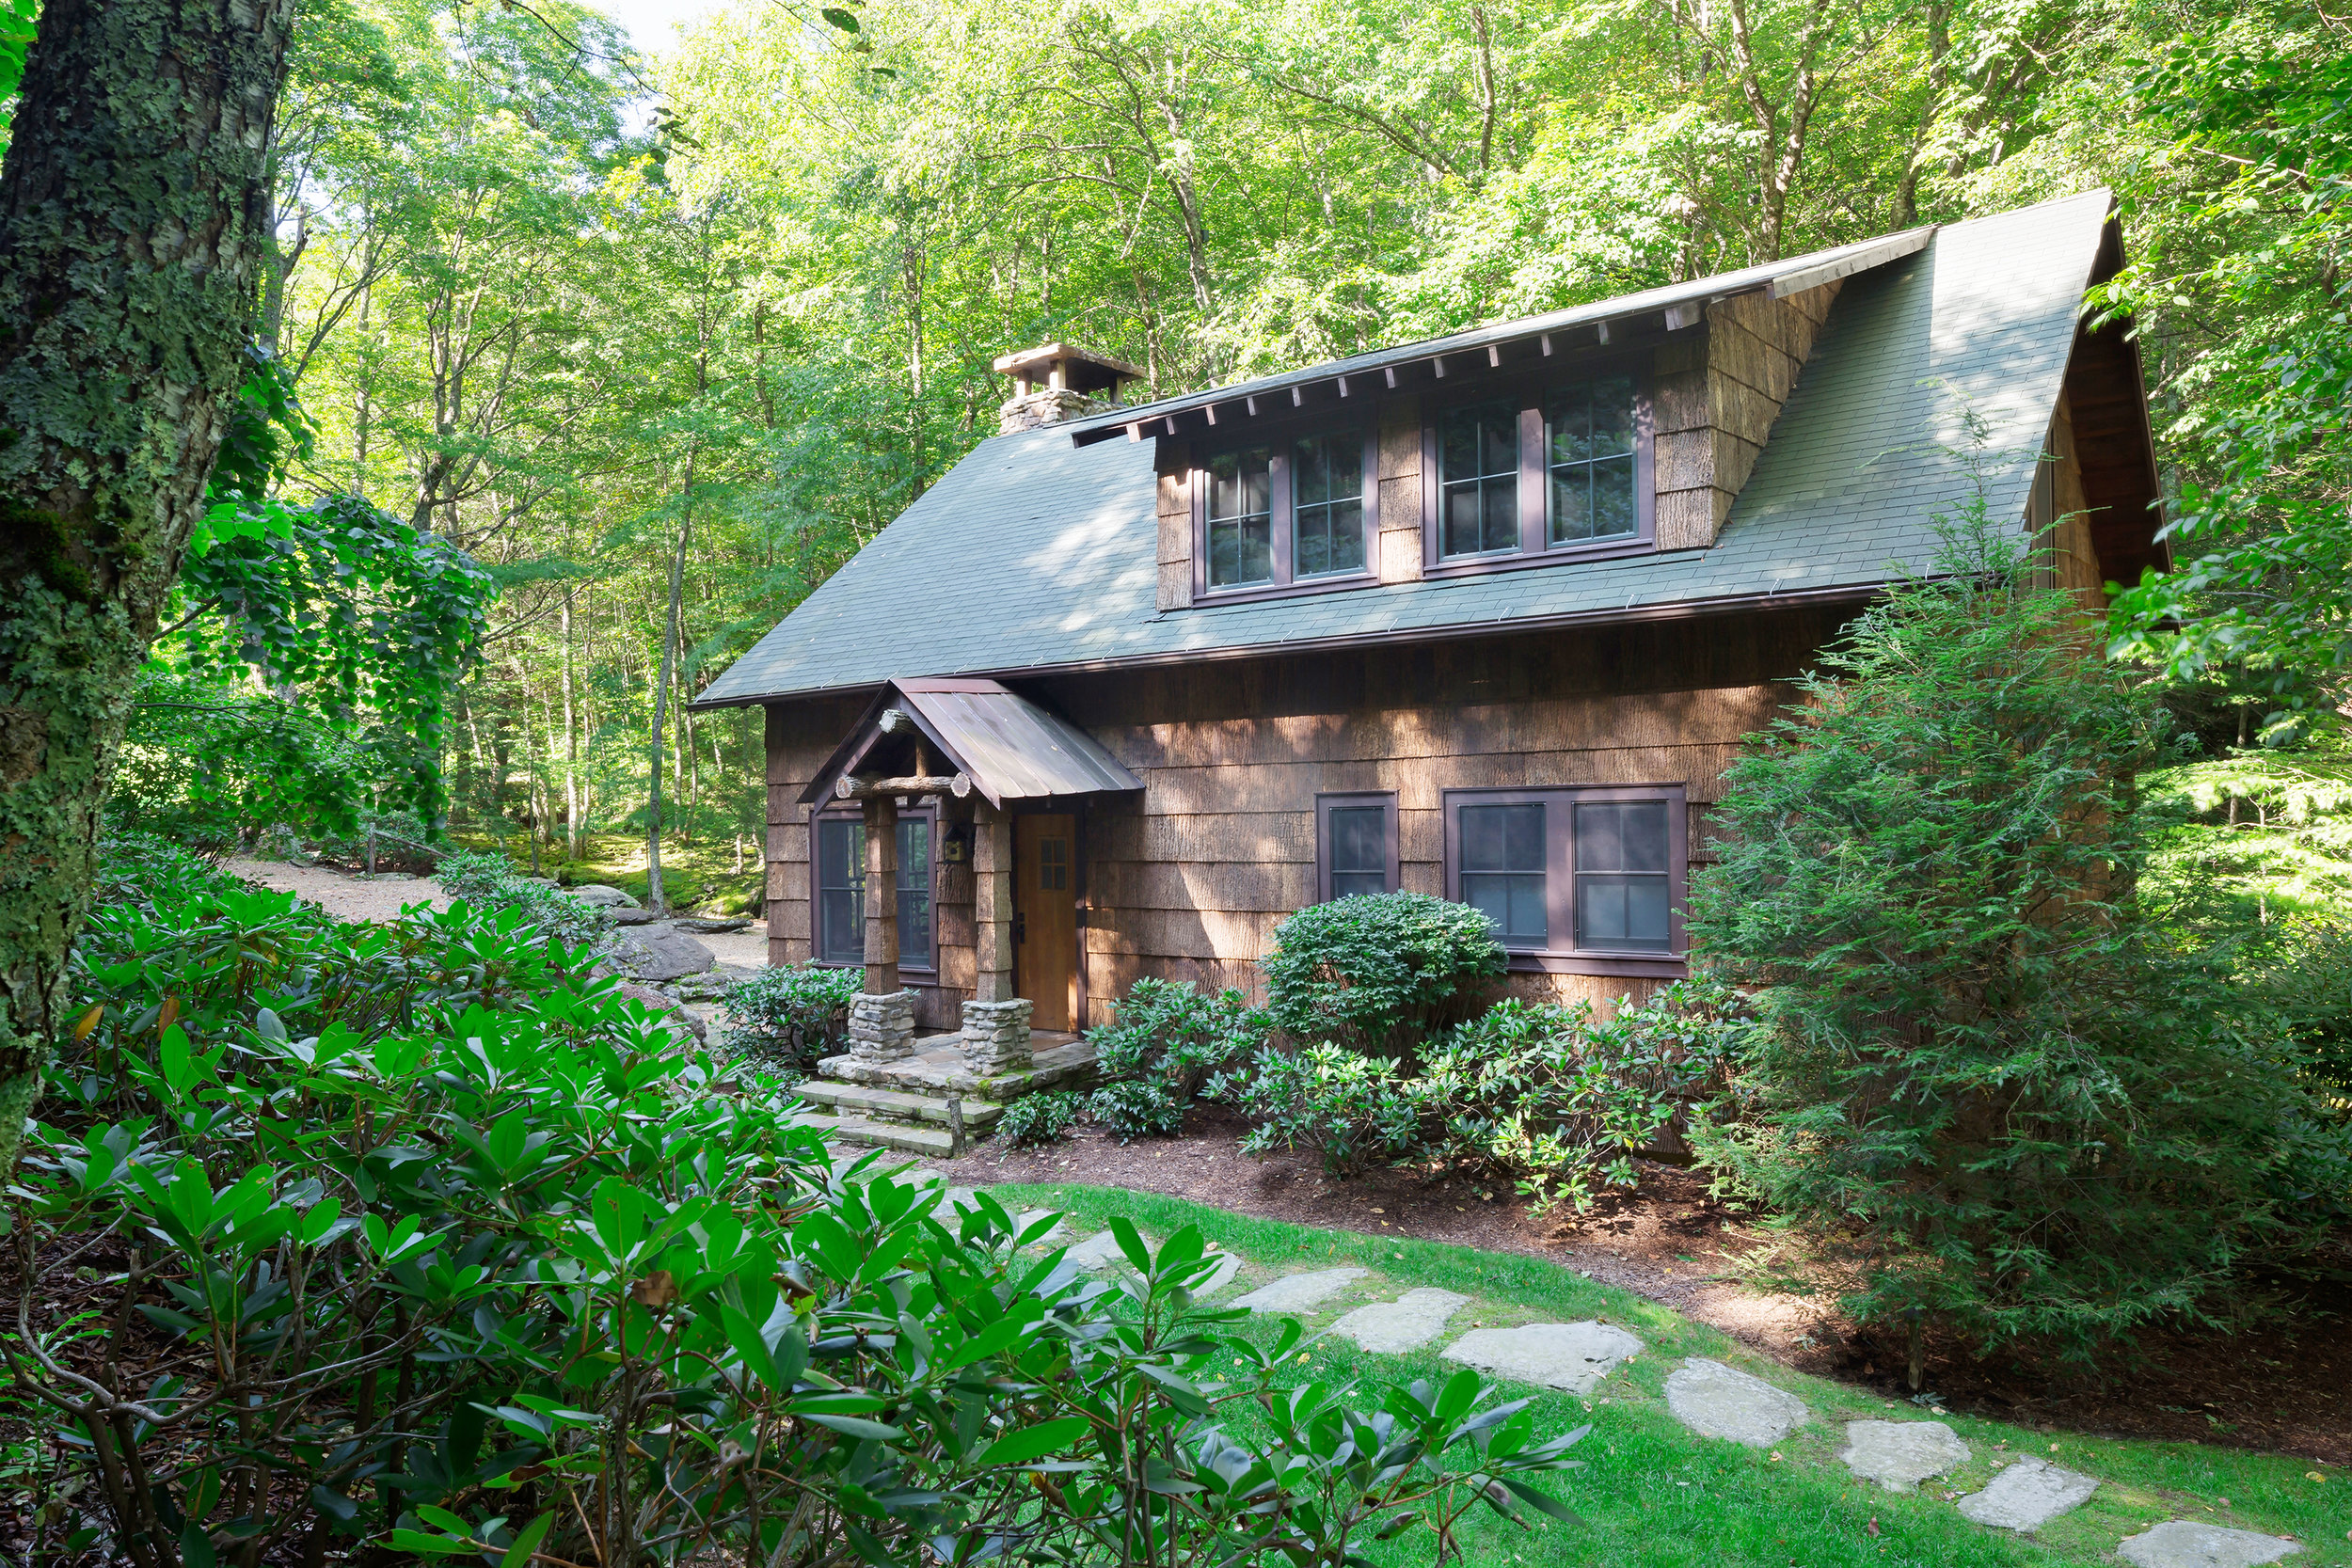 Appalachian Creek Cabin